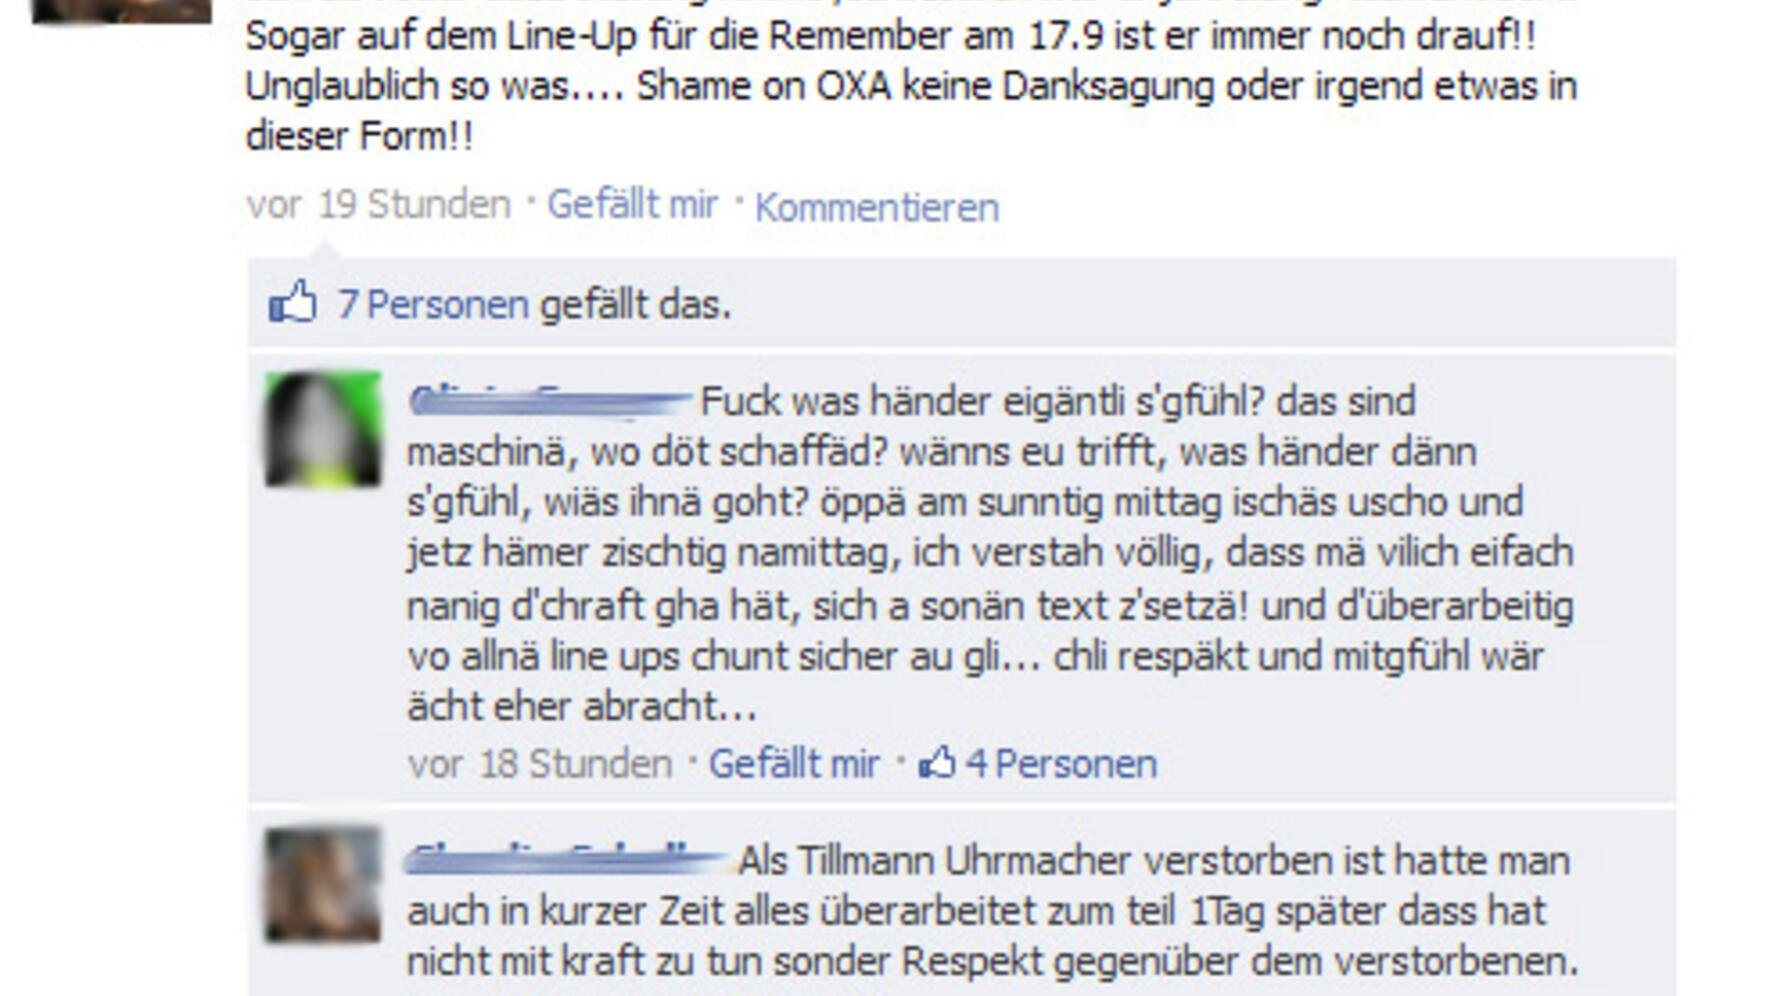 Tod DJ Energy Screenshot Facebook Oxa Reaktionen Fans